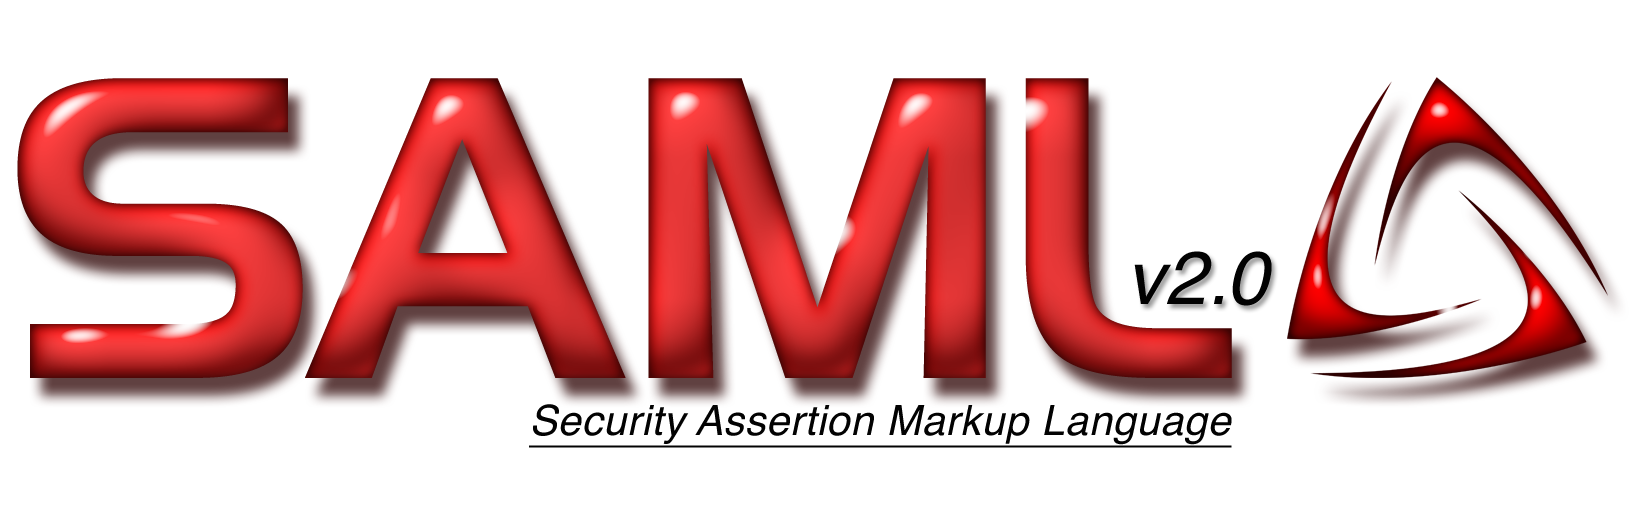 Login using Custom SAML Method